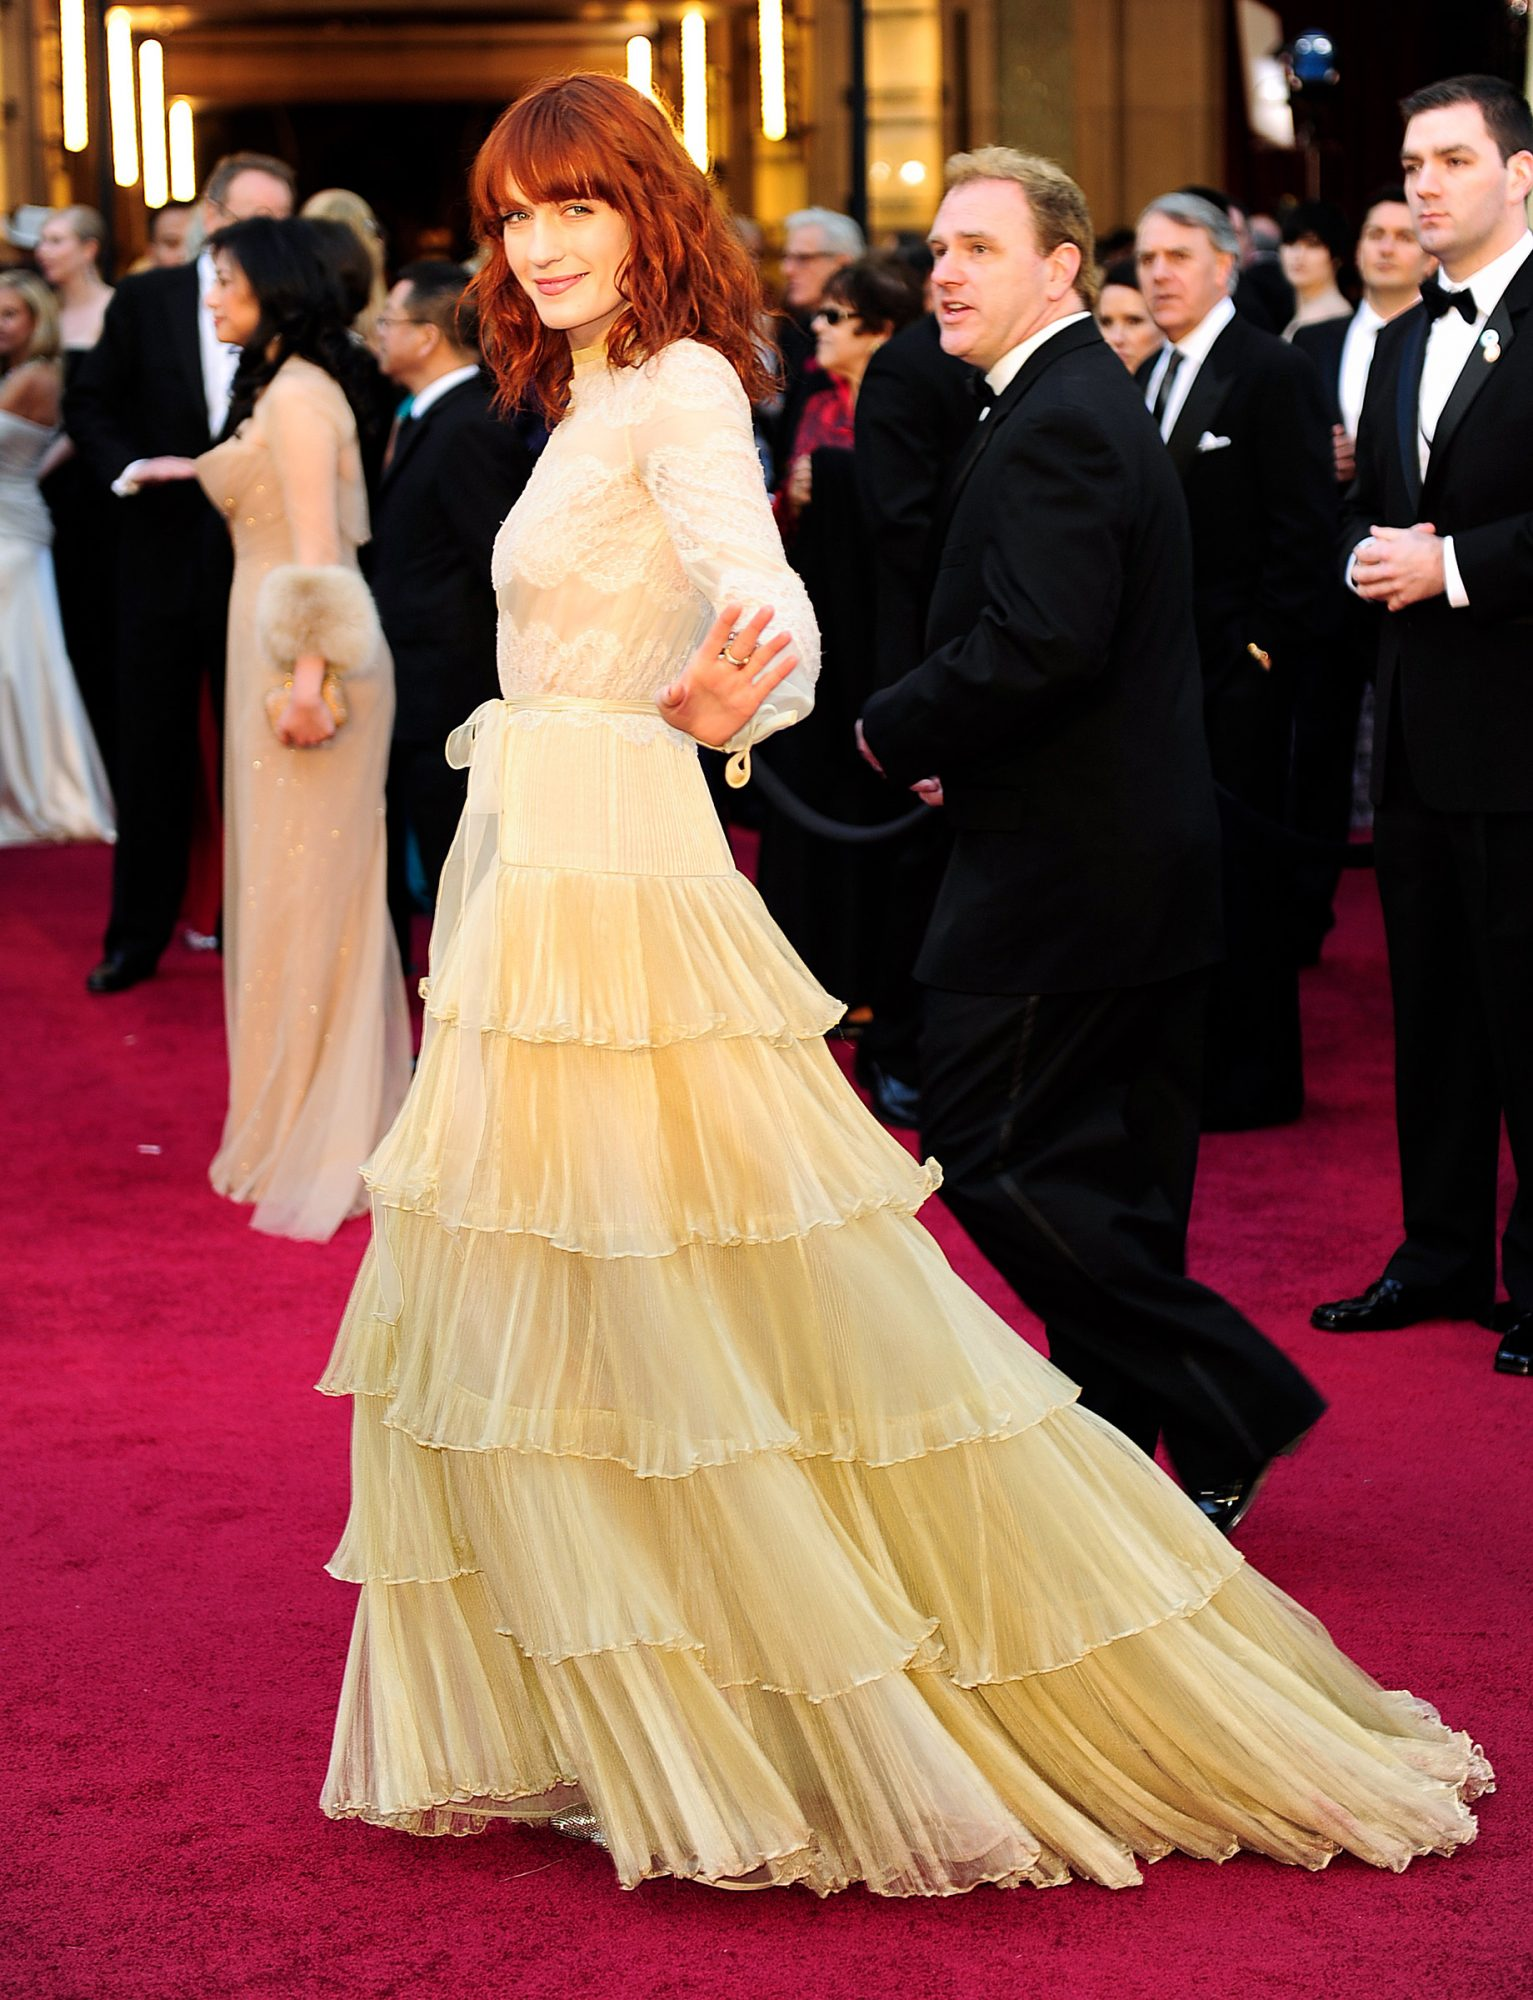 2011 Academy Awards, Florence Welch